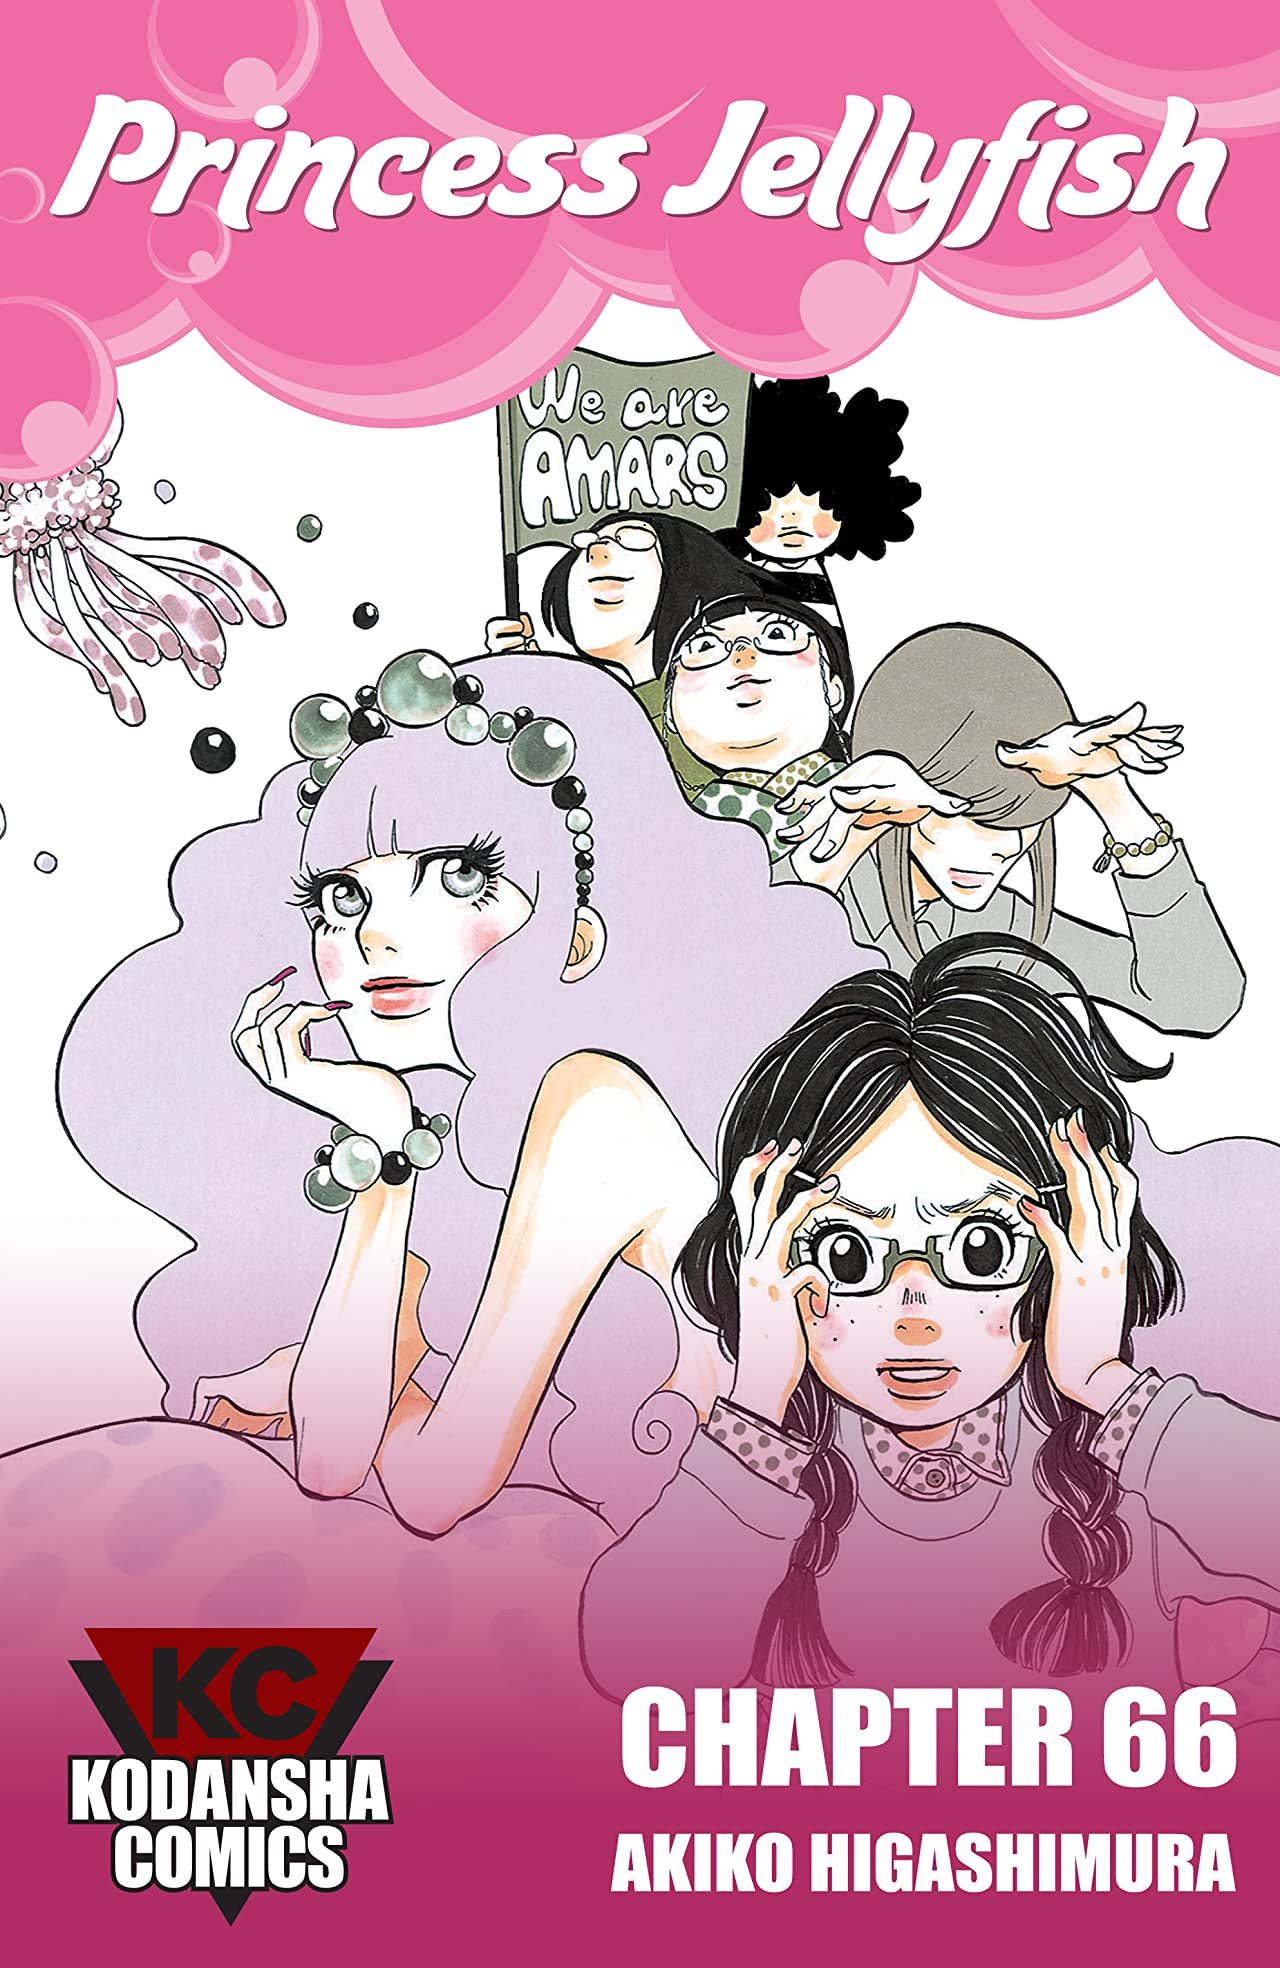 Princess Jellyfish #66